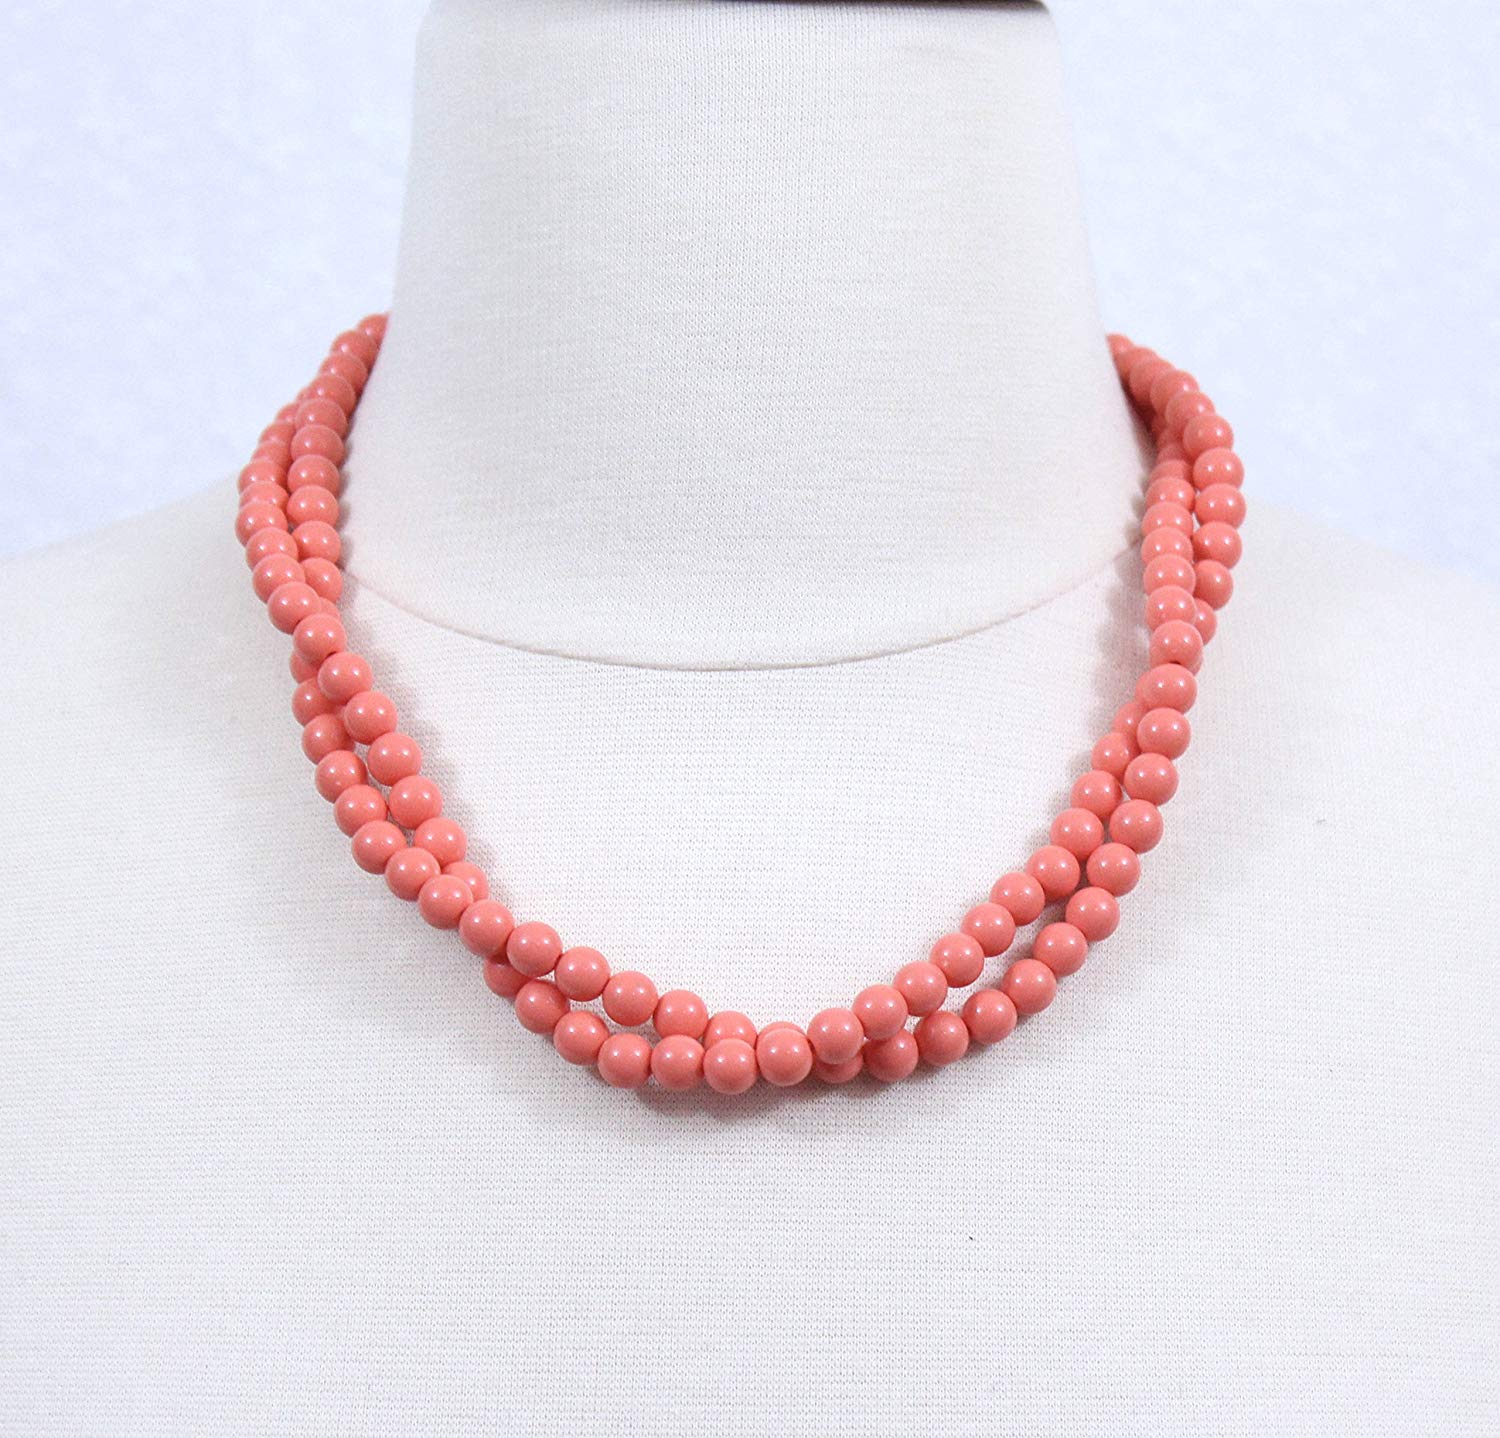 Coral Necklace, Braided Beaded Necklace, Orange Chunky Statement Necklace, Twisted Beads Necklace, Brides Maids Necklaces, Wedding Jewelry